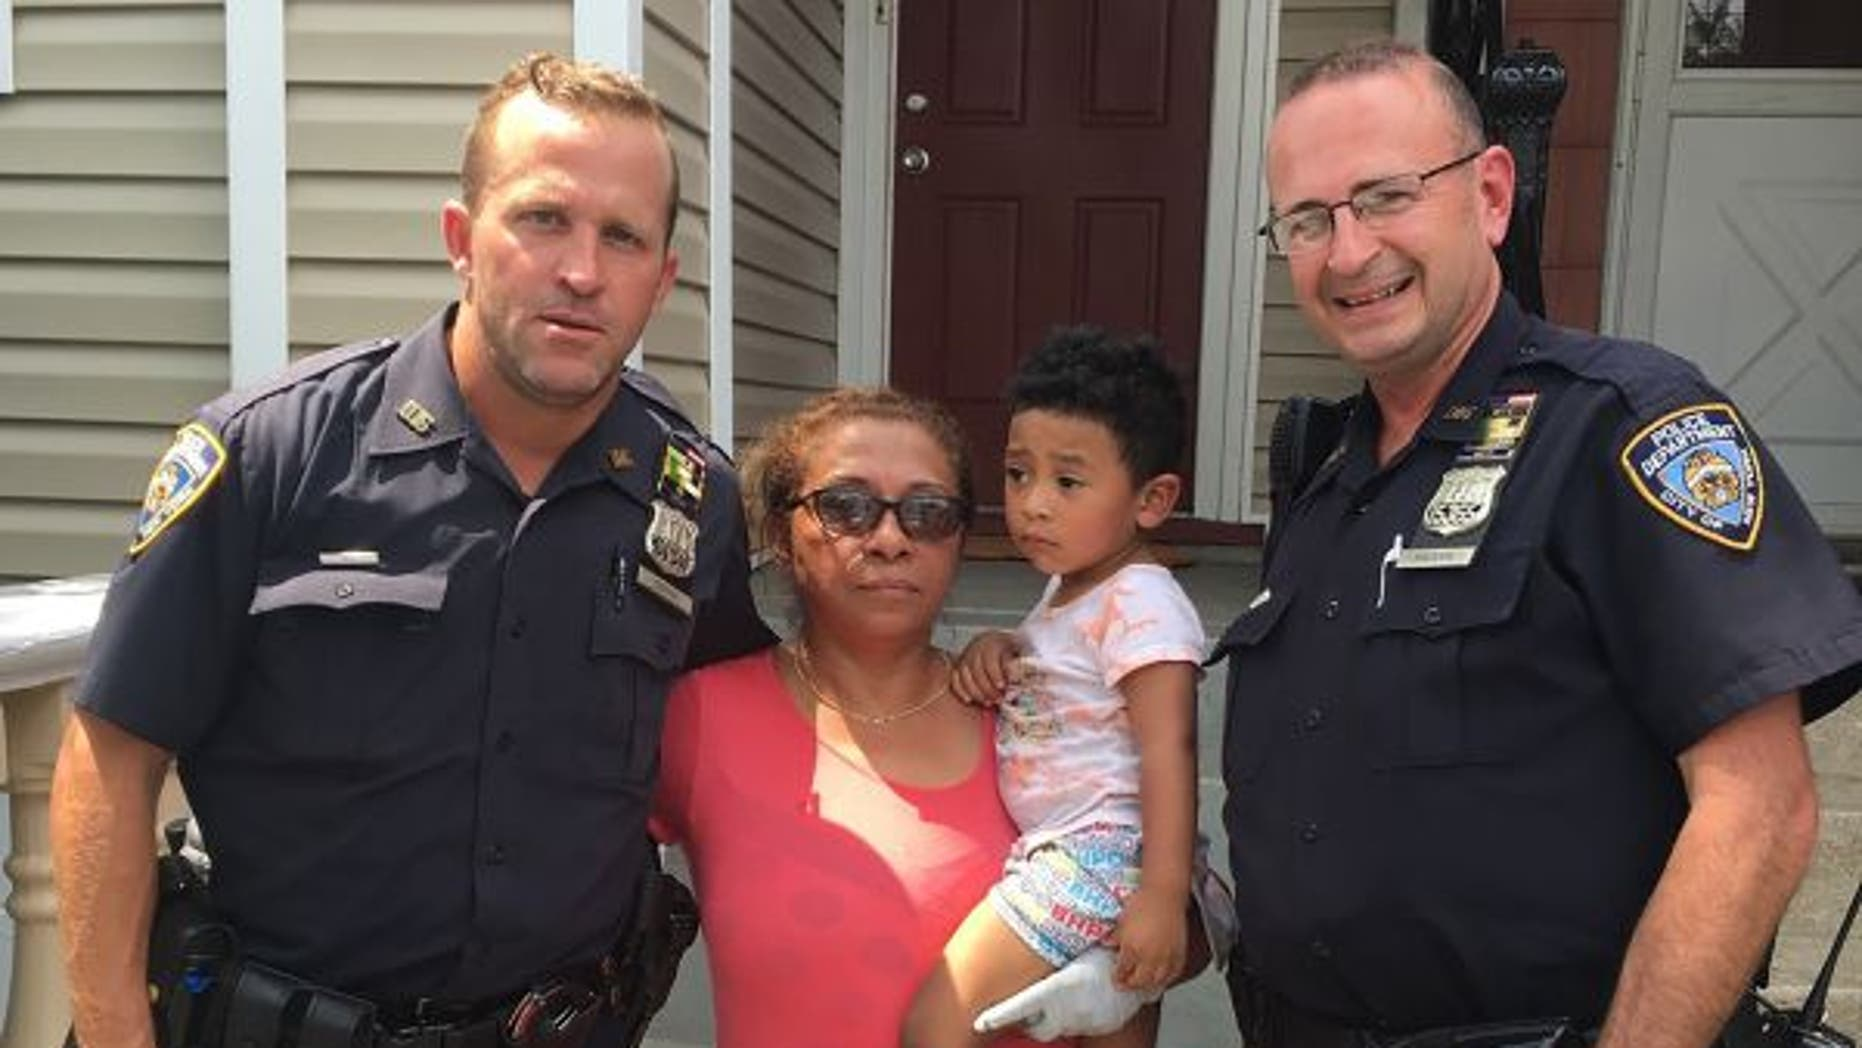 Brian Coffey, left, and John Maderik saved the woman and her 2-year-old grandson from a fire in their New York City home.